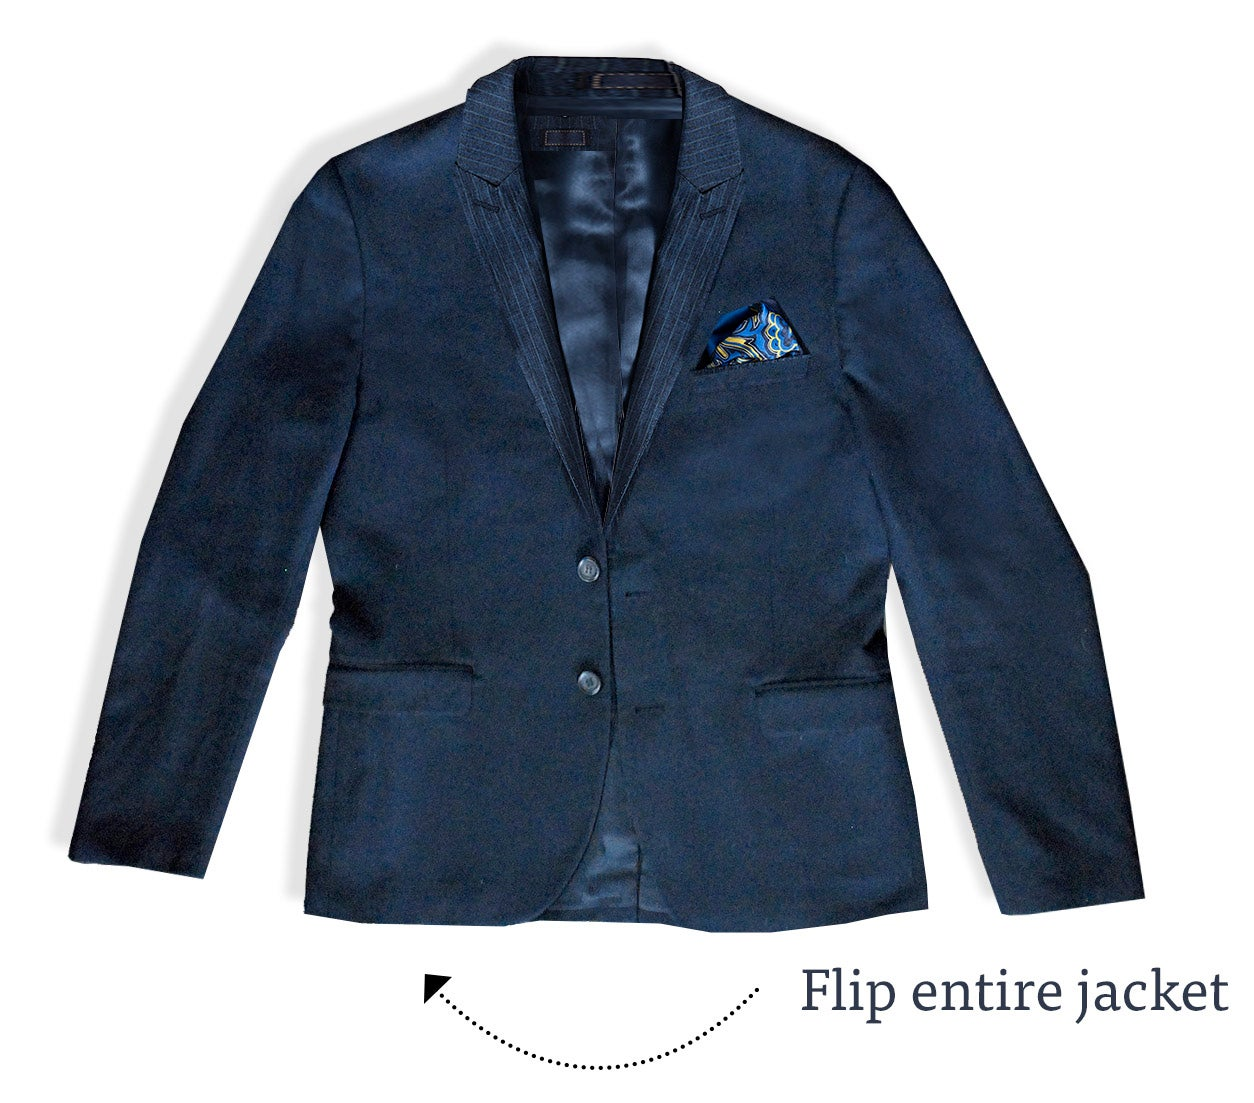 How to pack a suit | Step 1